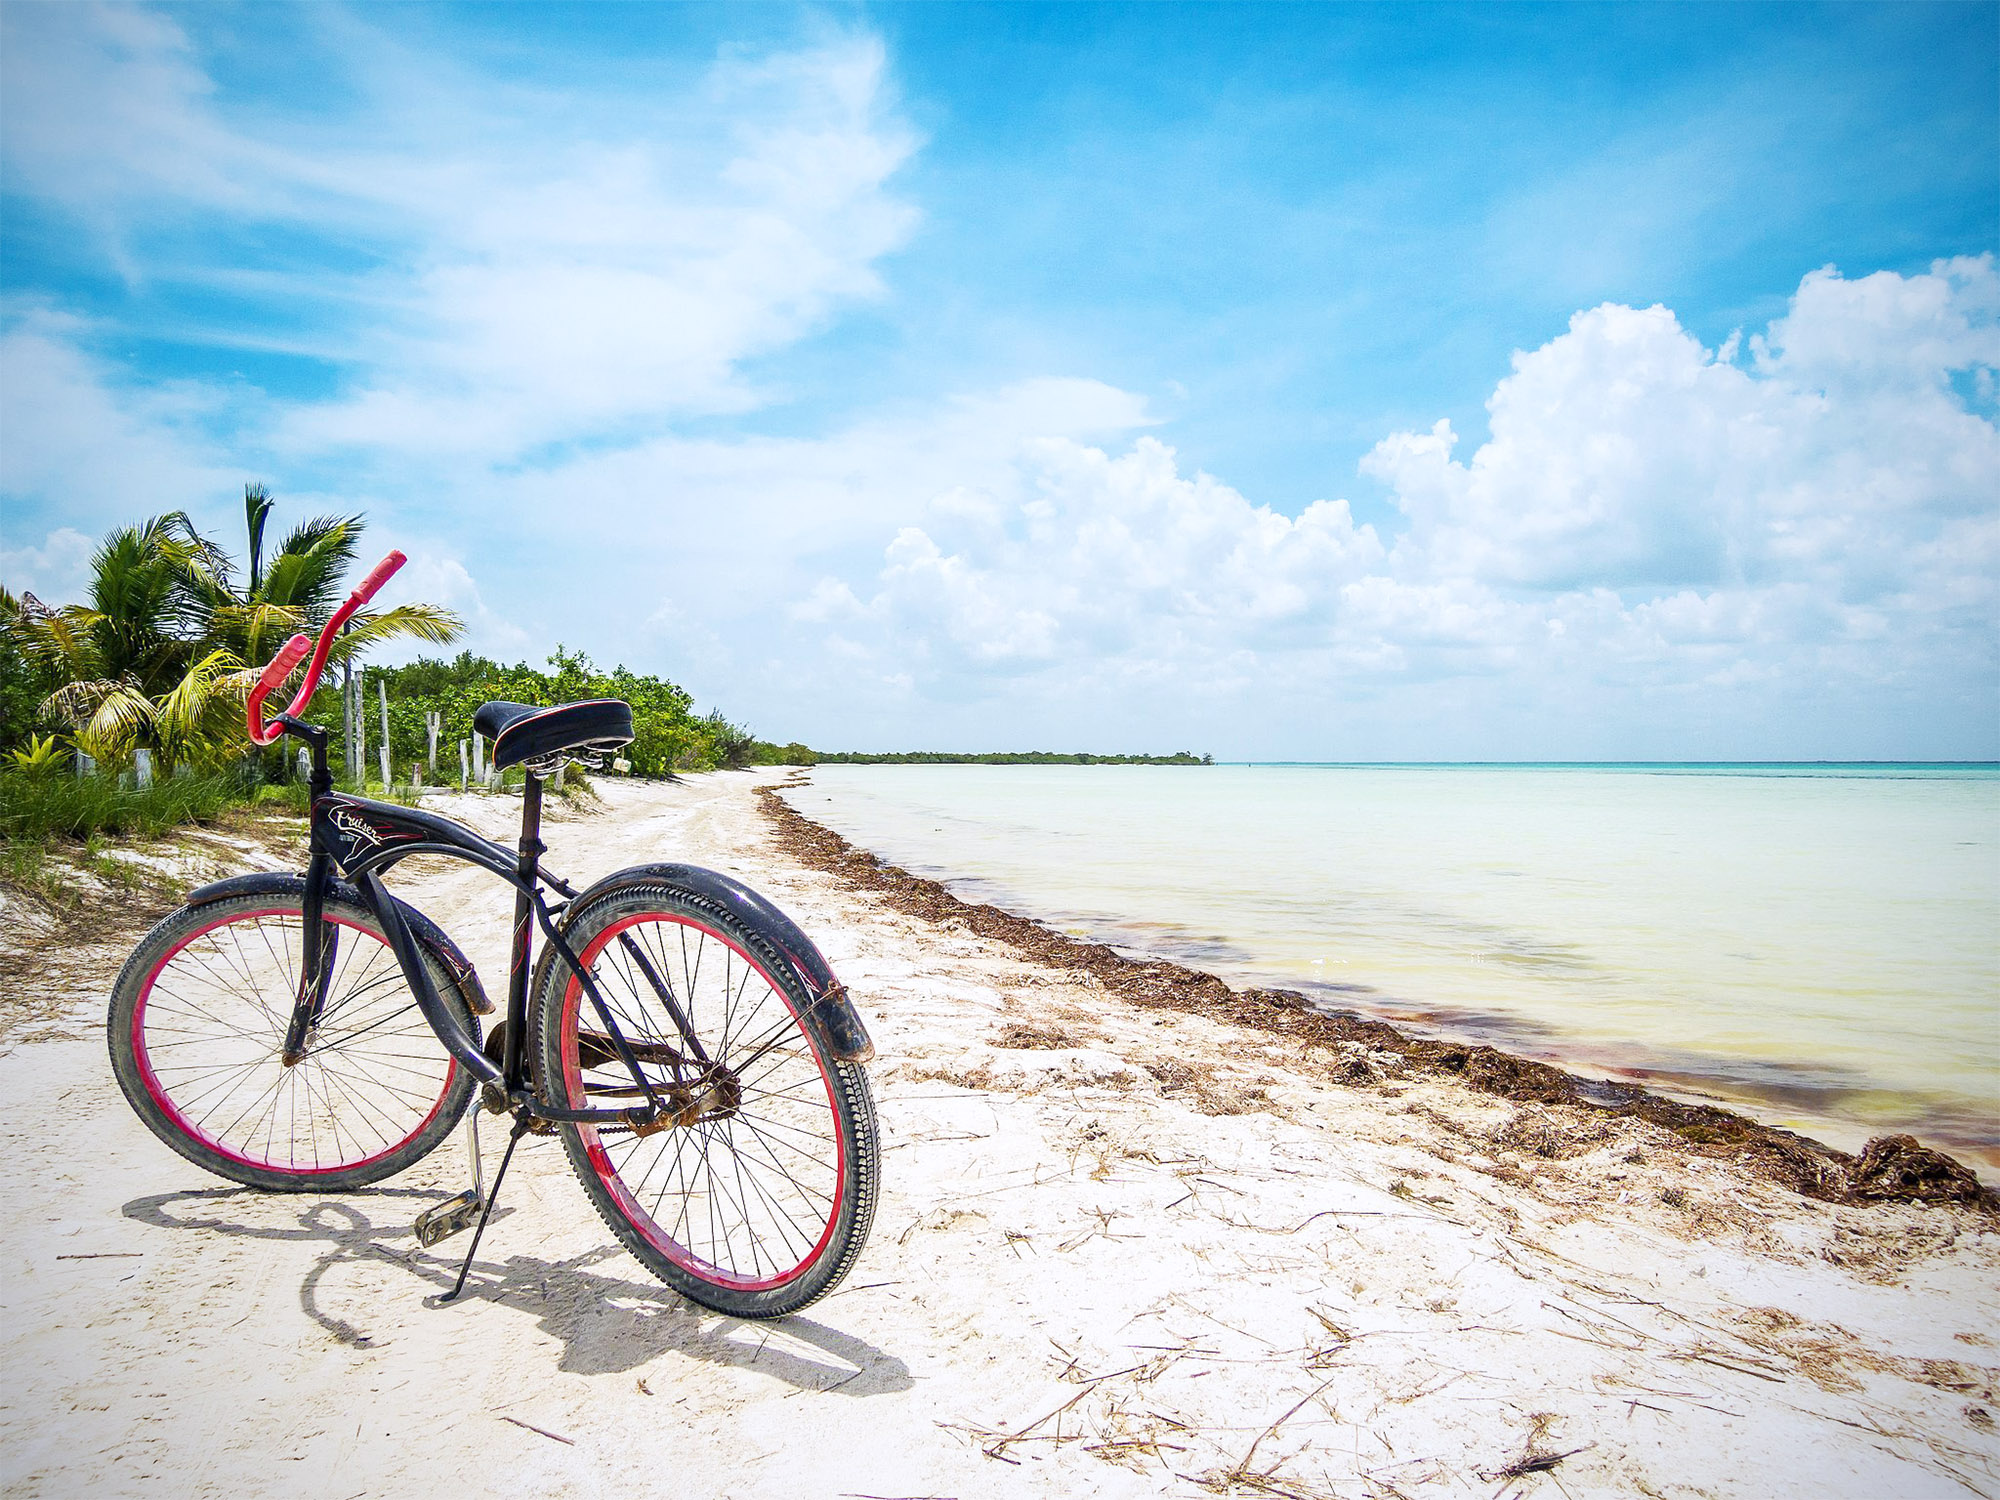 Bicycle parked on the beach right next to the sea, Isla Holbox, Mexico